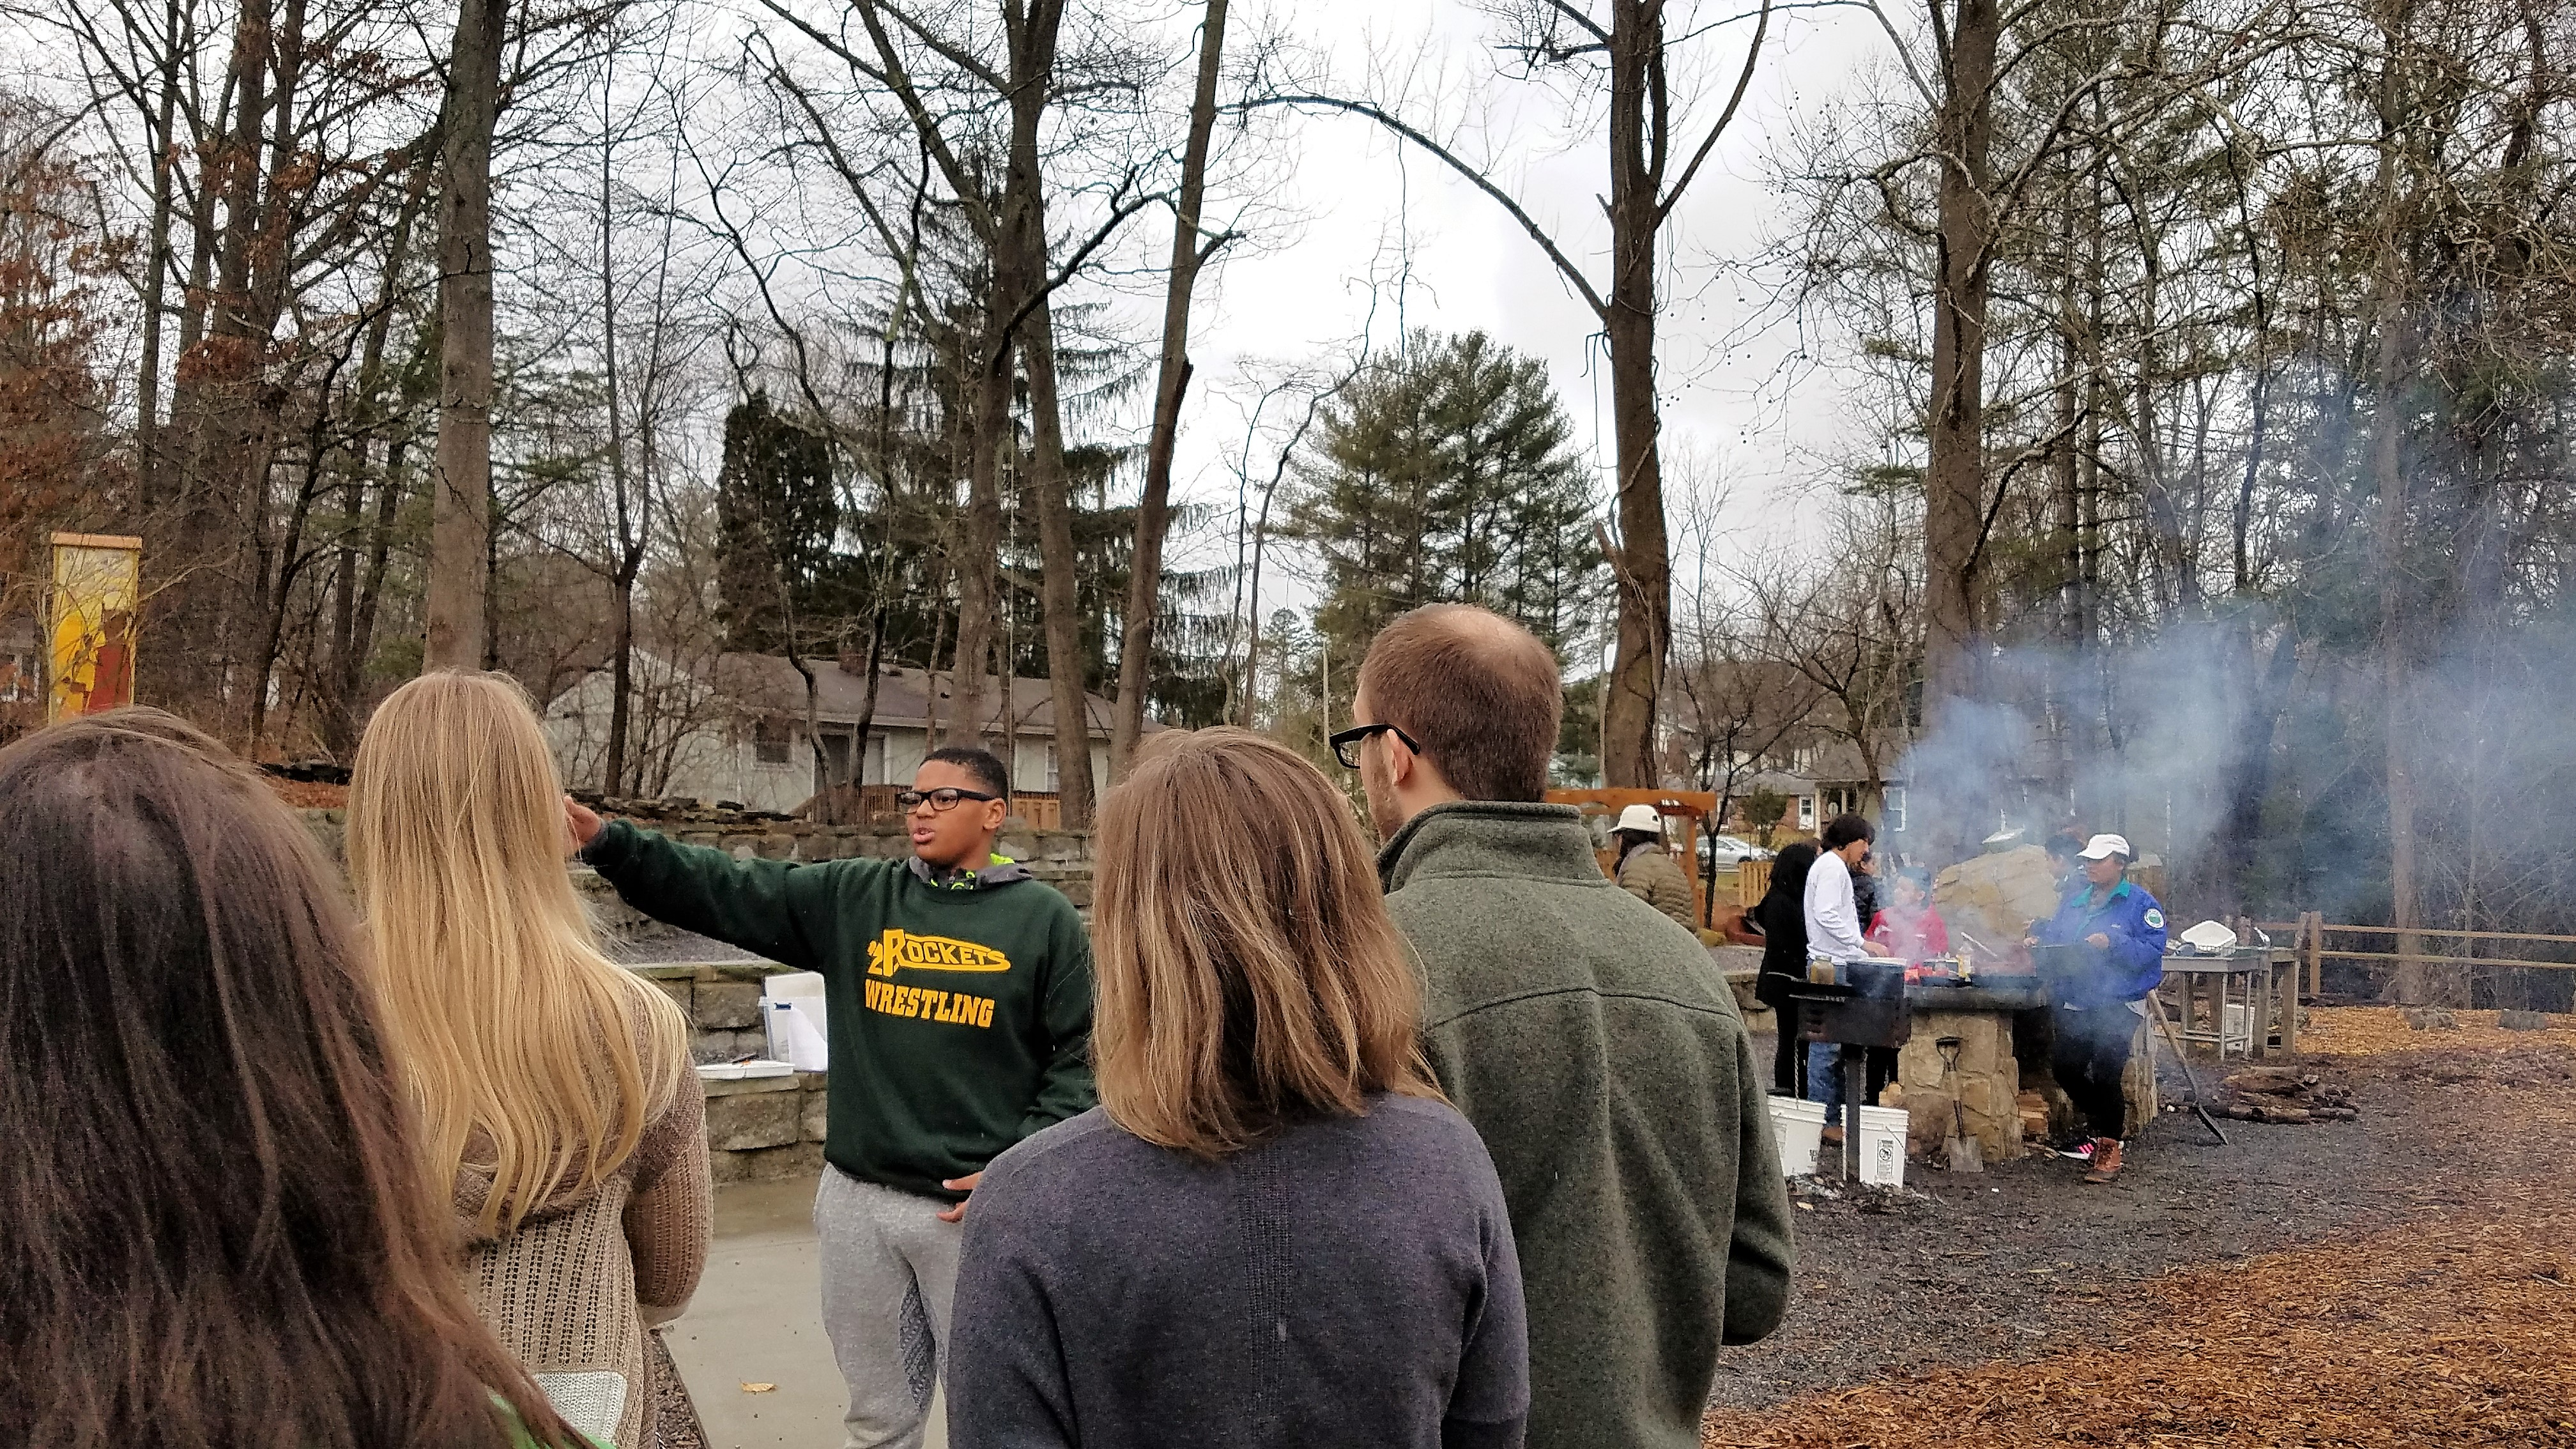 A young tour guide gives an overview of the history of the Shiloh grounds and neighborhoods as well as the community center.